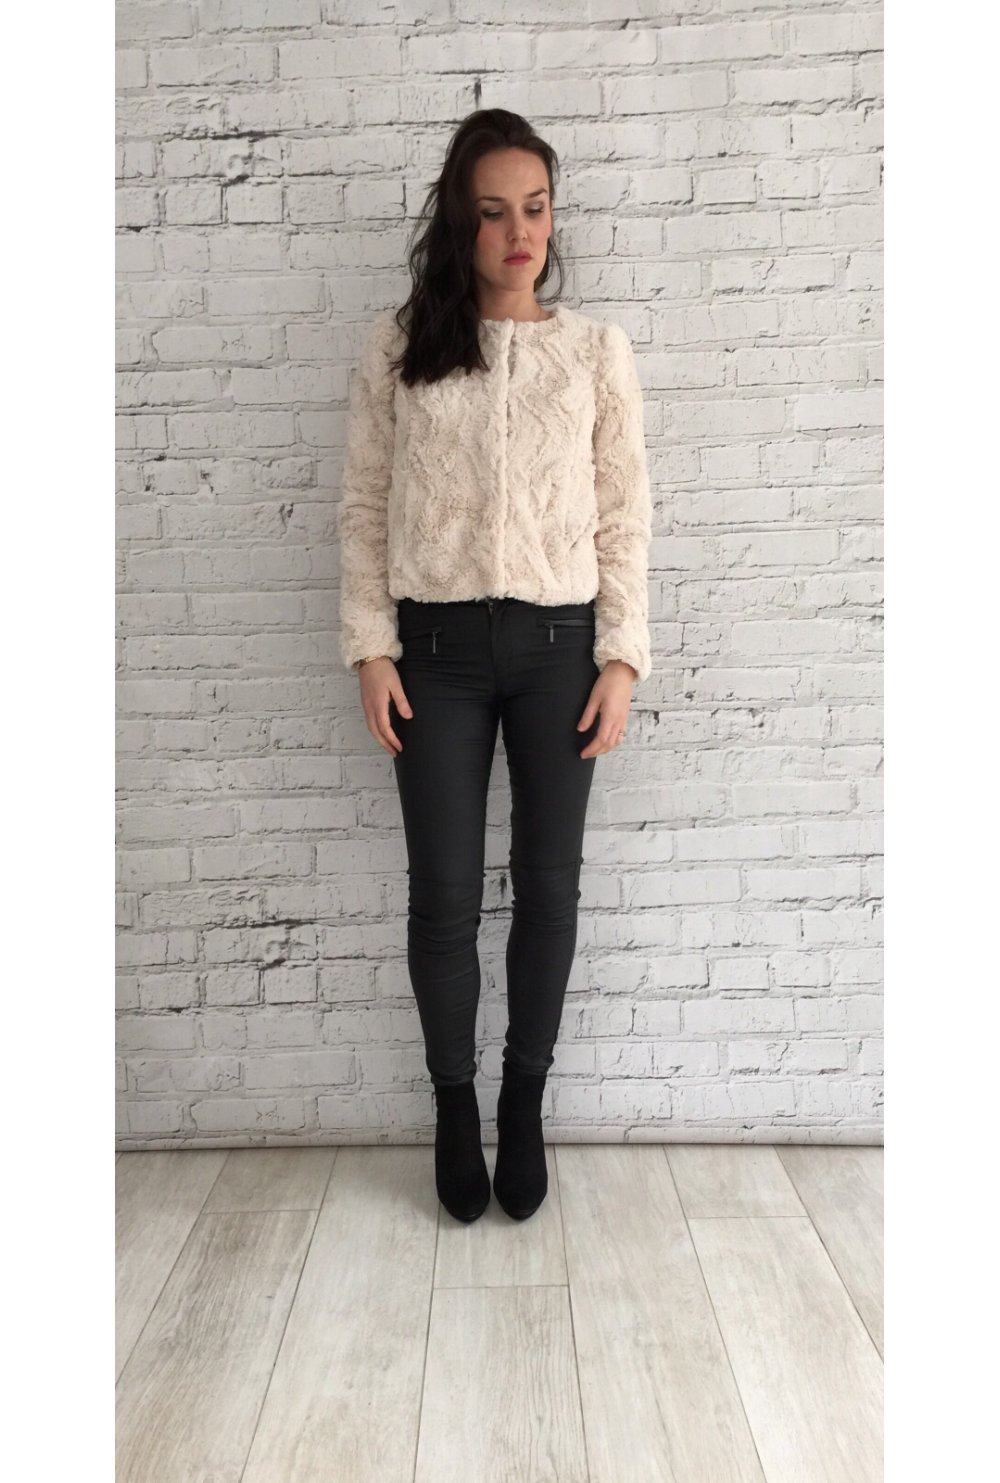 Vero Moda Soft Blush Short Faux Fur Jacket - Vero Moda from Ruby ...